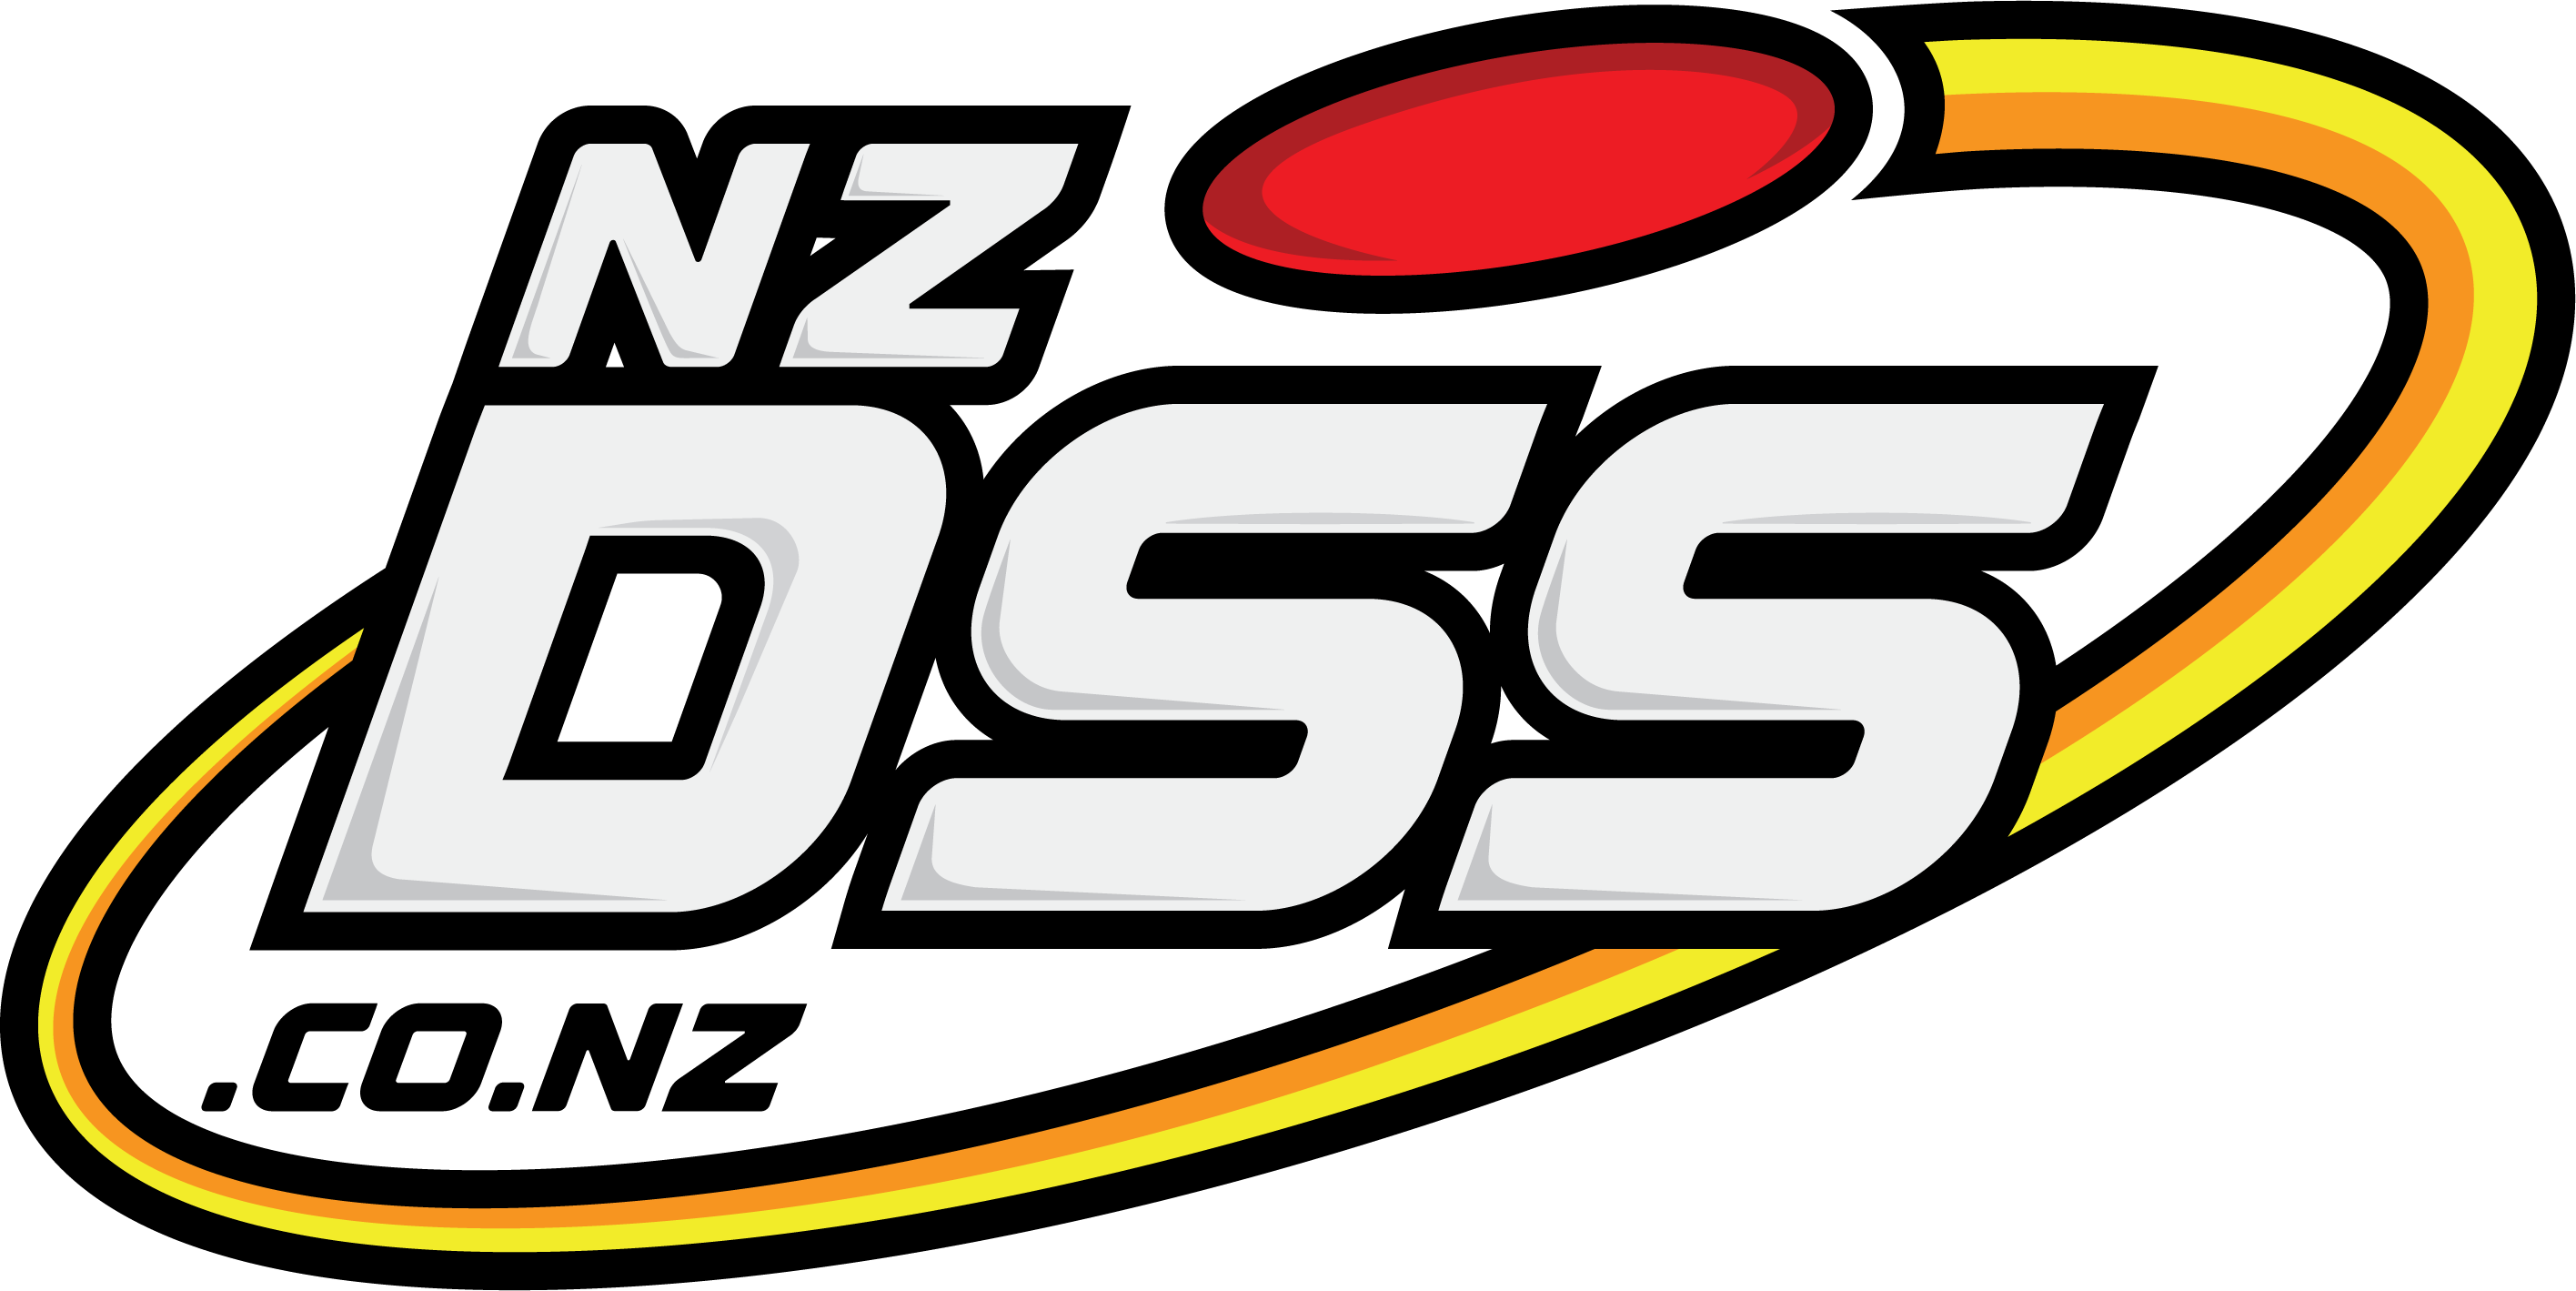 nzdss.co.nzfull.png